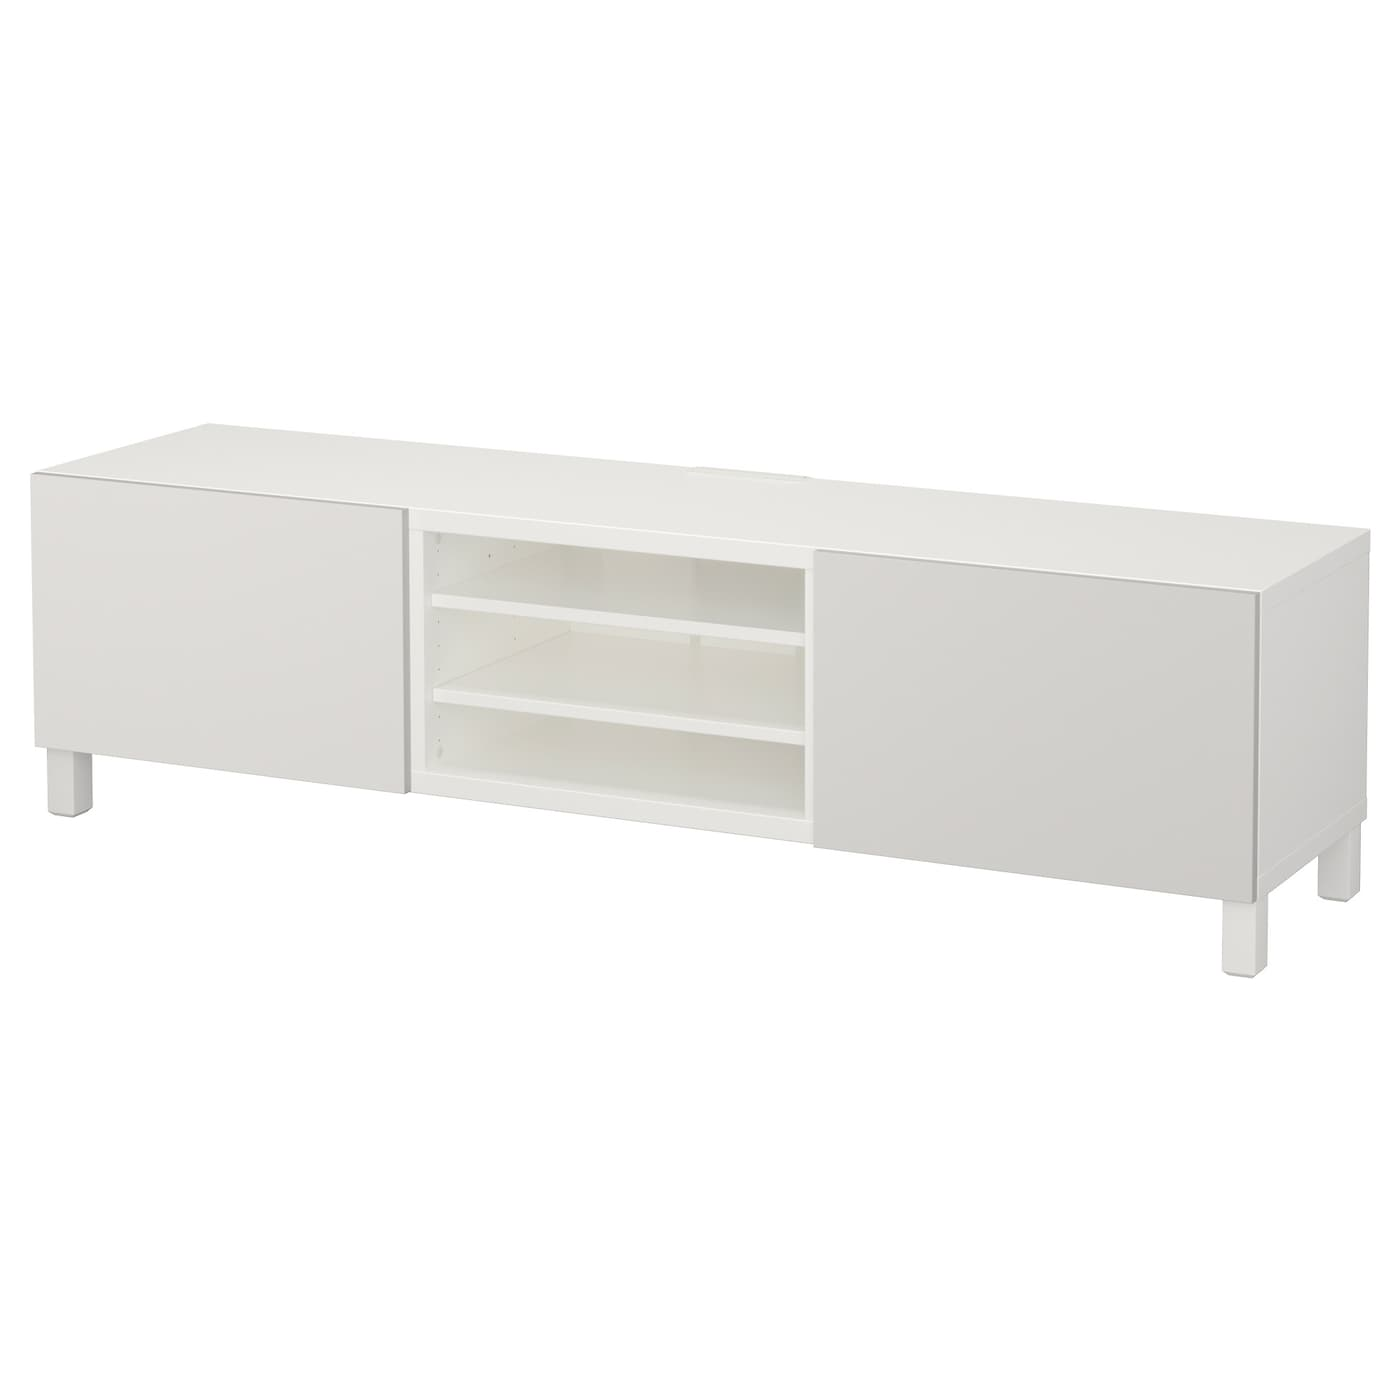 best tv bench with drawers white lappviken light grey 180 x 40 x 48 cm ikea. Black Bedroom Furniture Sets. Home Design Ideas